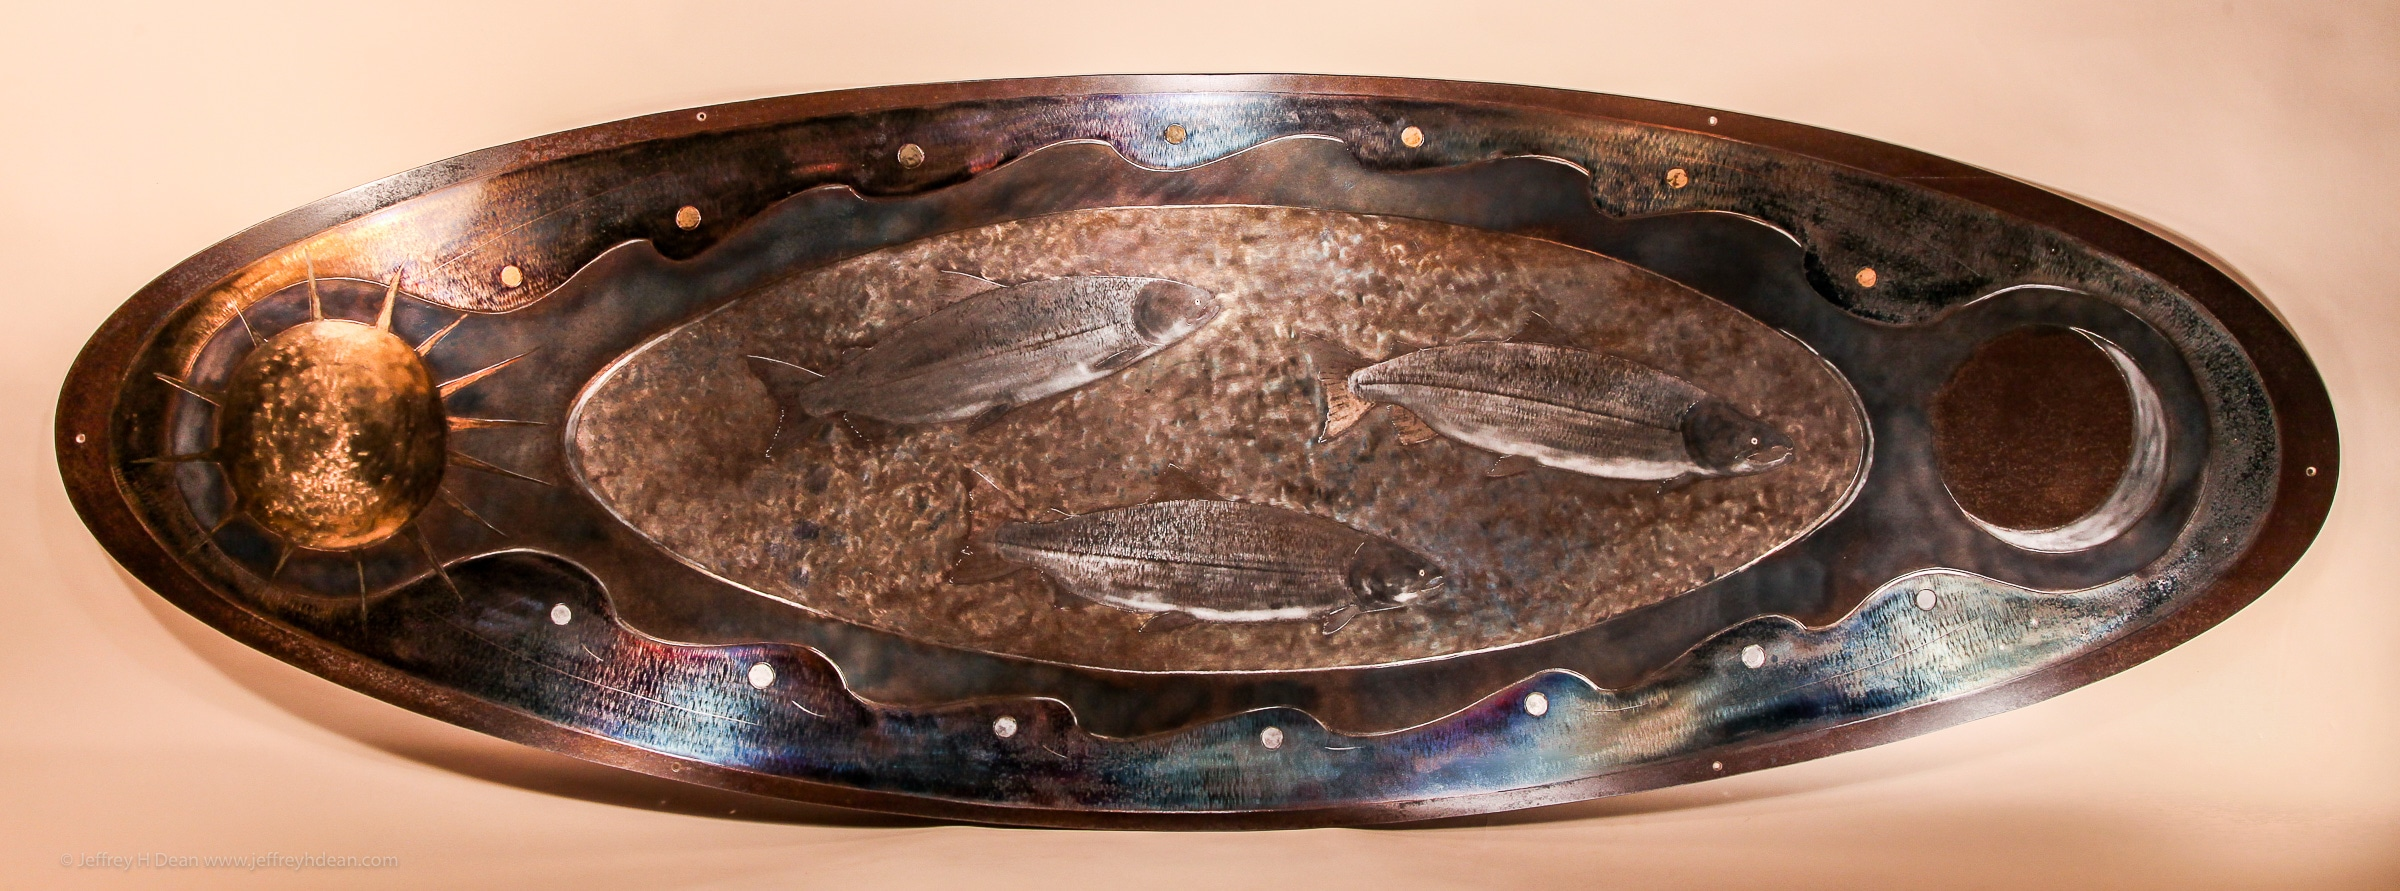 Salmon metal wall art. Three silver salmon swim between the tides, the sun and moon in this engraved and heat tinted steel metal wall art.